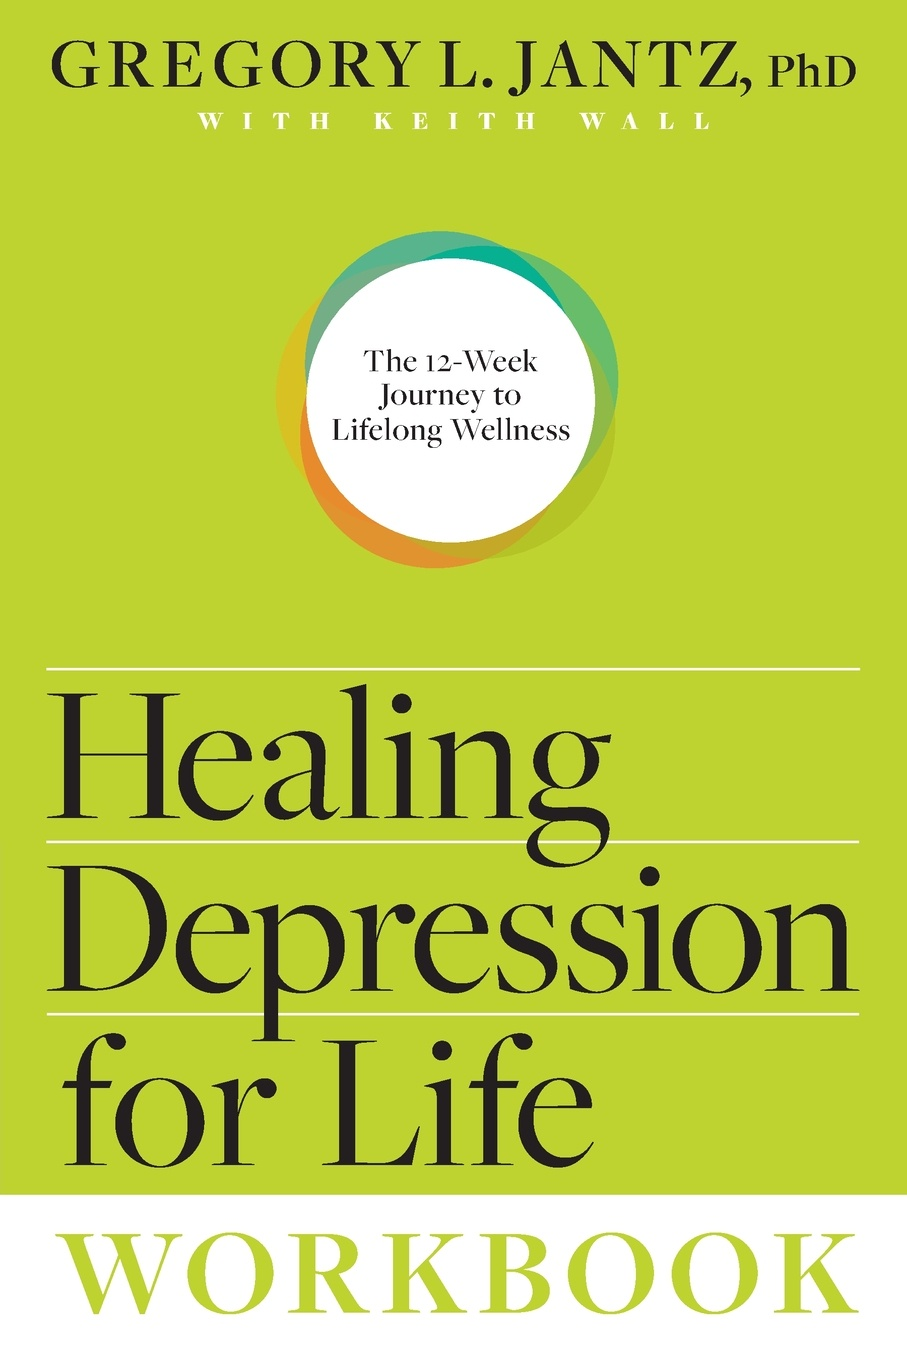 Gregory L. PH.D. Jantz Healing Depression for Life Workbook nancy liebler ph d healing depression the mind body way creating happiness with meditation yoga and ayurveda